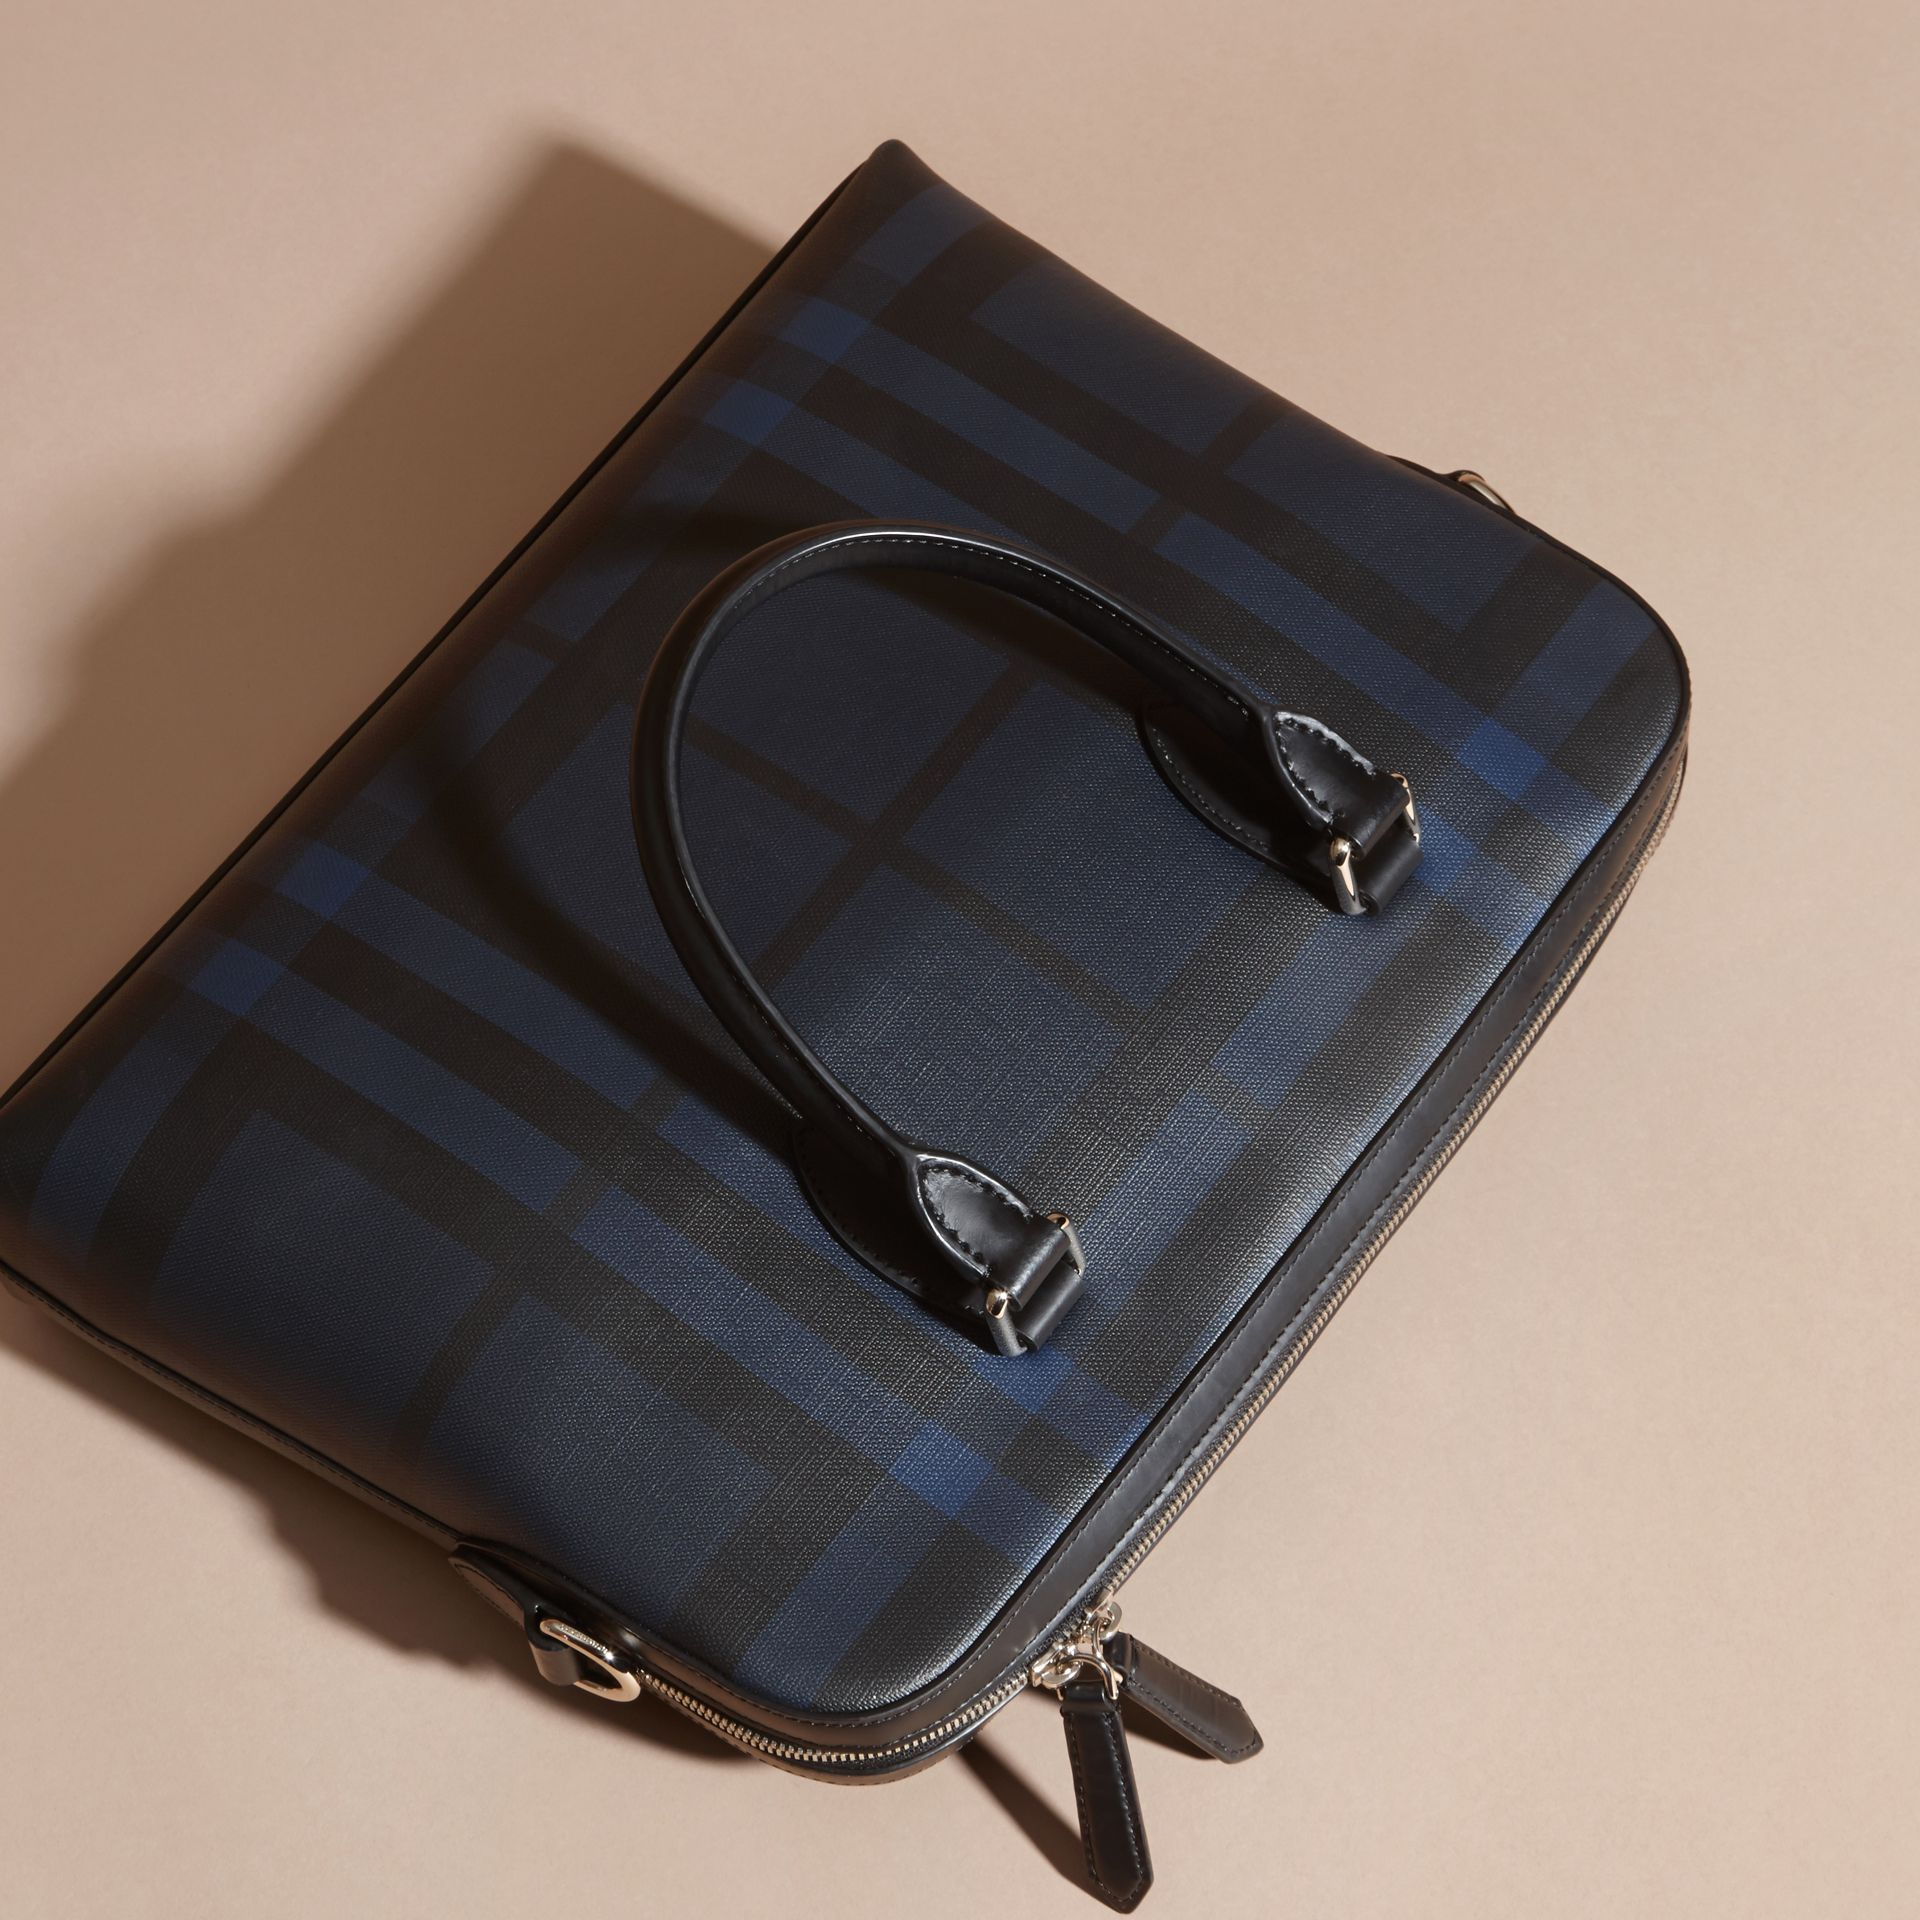 Sac The Barrow fin avec motif London check (Marine/noir) - Homme | Burberry - photo de la galerie 7